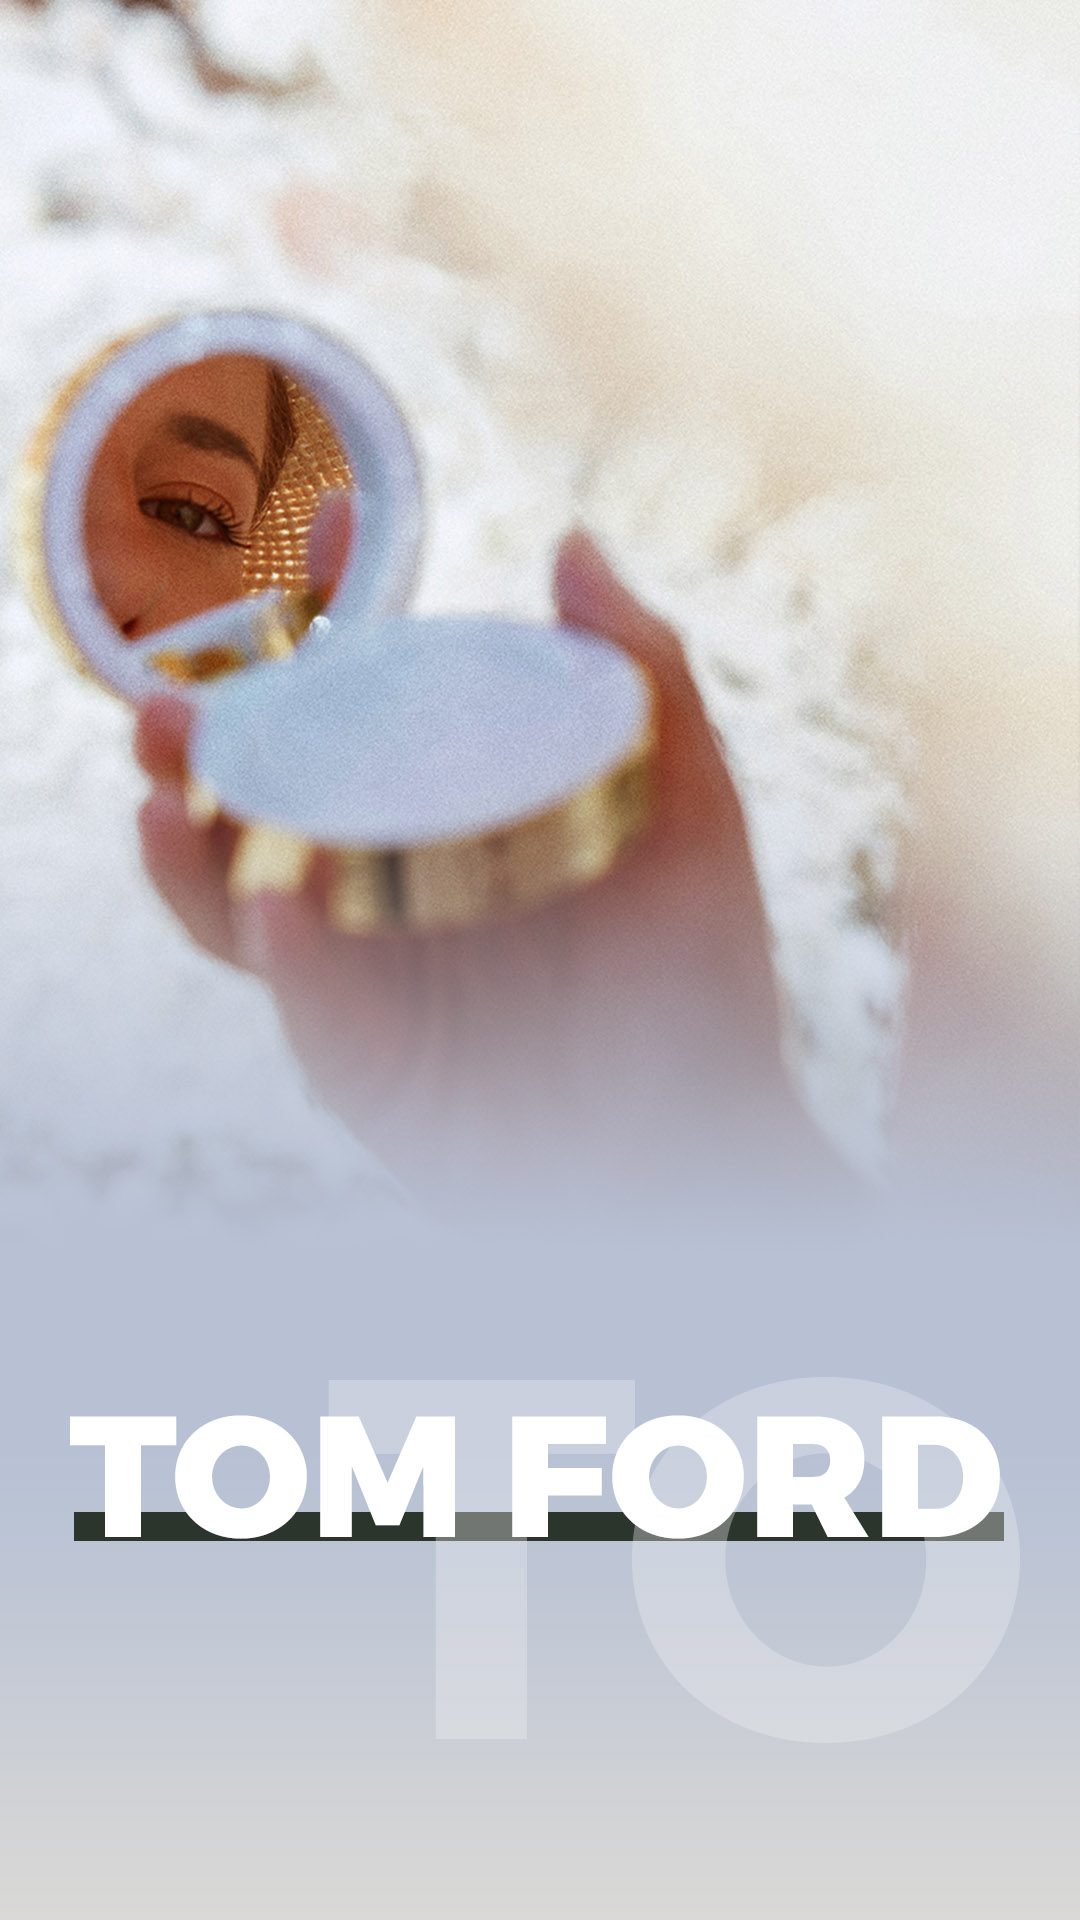 afterteam projects blog 02 tom ford 2019 vertical